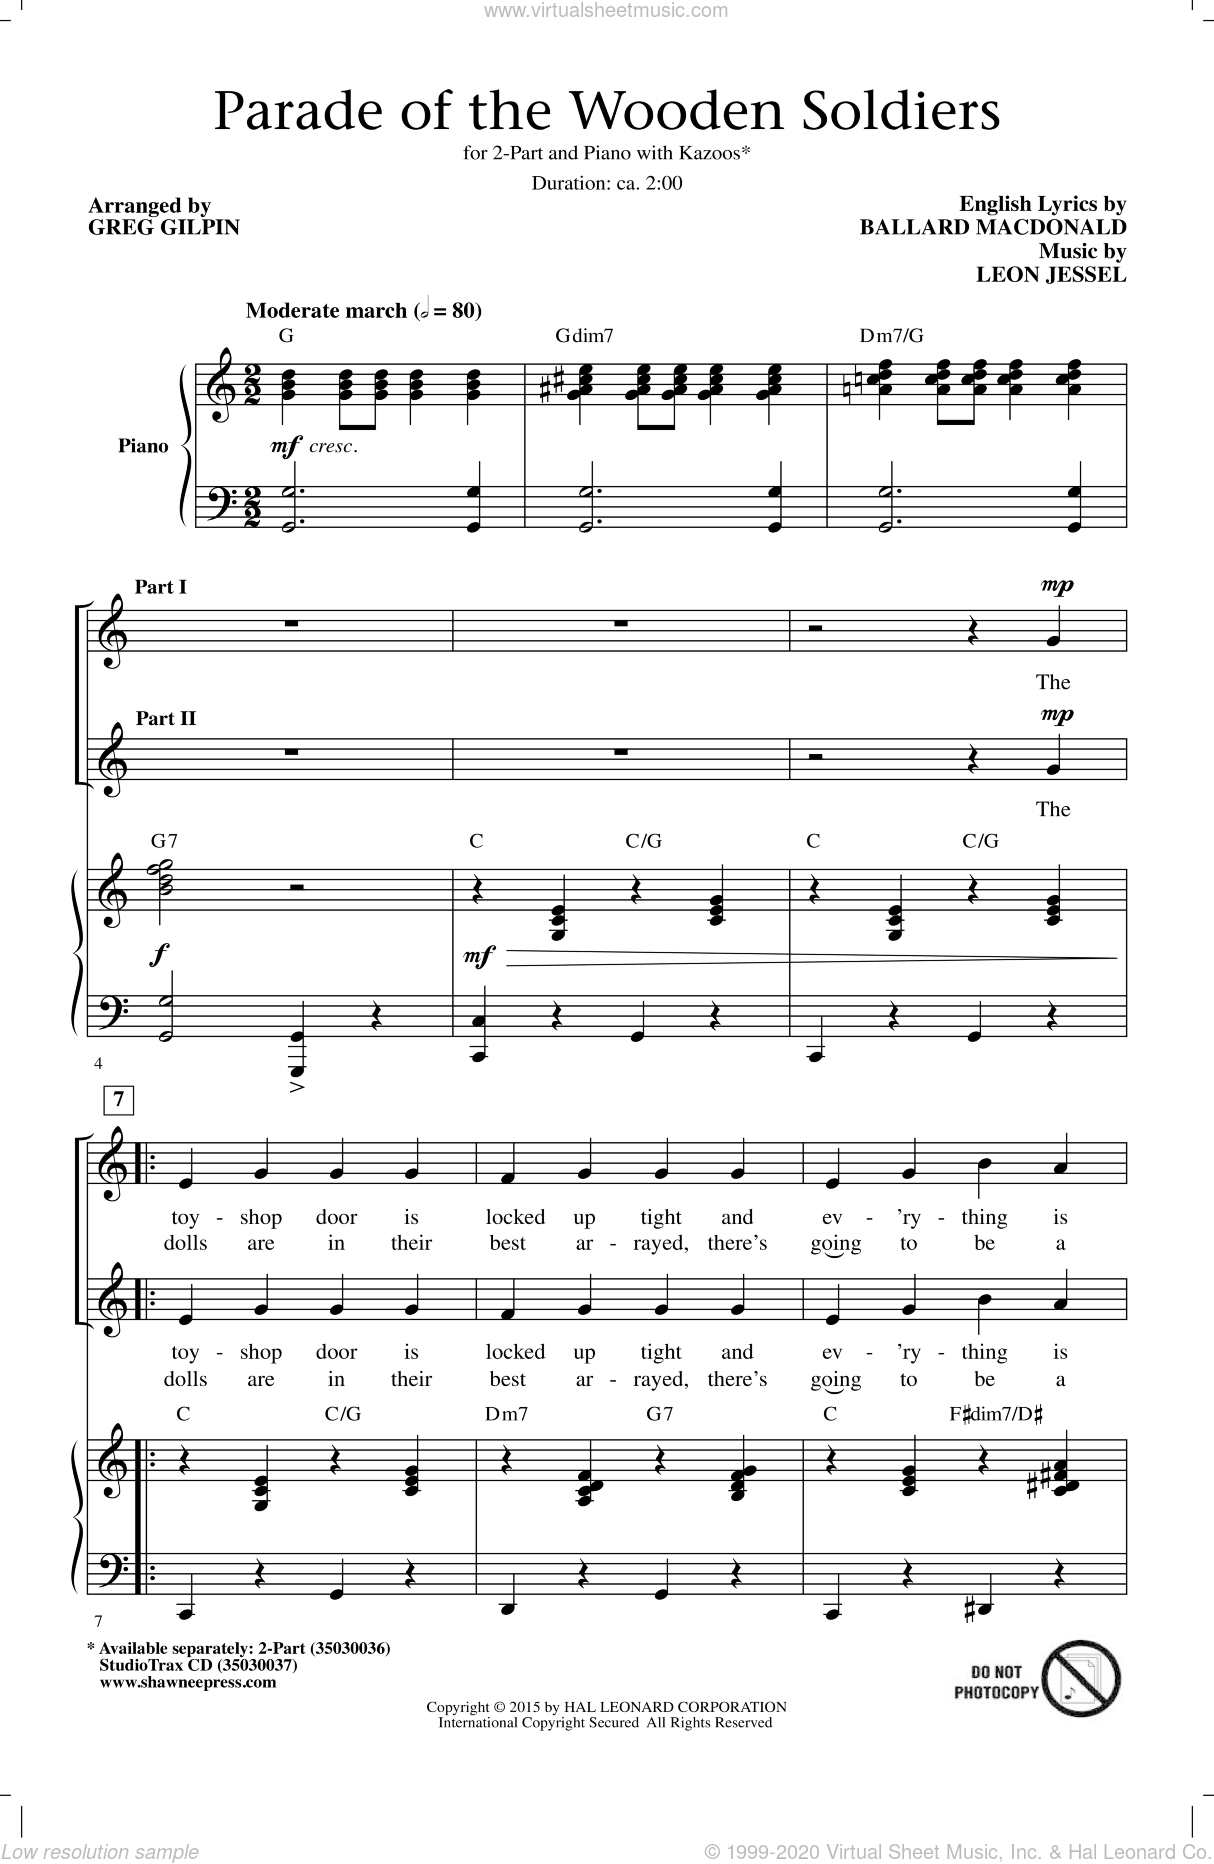 Parade Of The Wooden Soldiers sheet music for choir (duets) by Greg Gilpin, Ballard MacDonald and Leon Jessel. Score Image Preview.